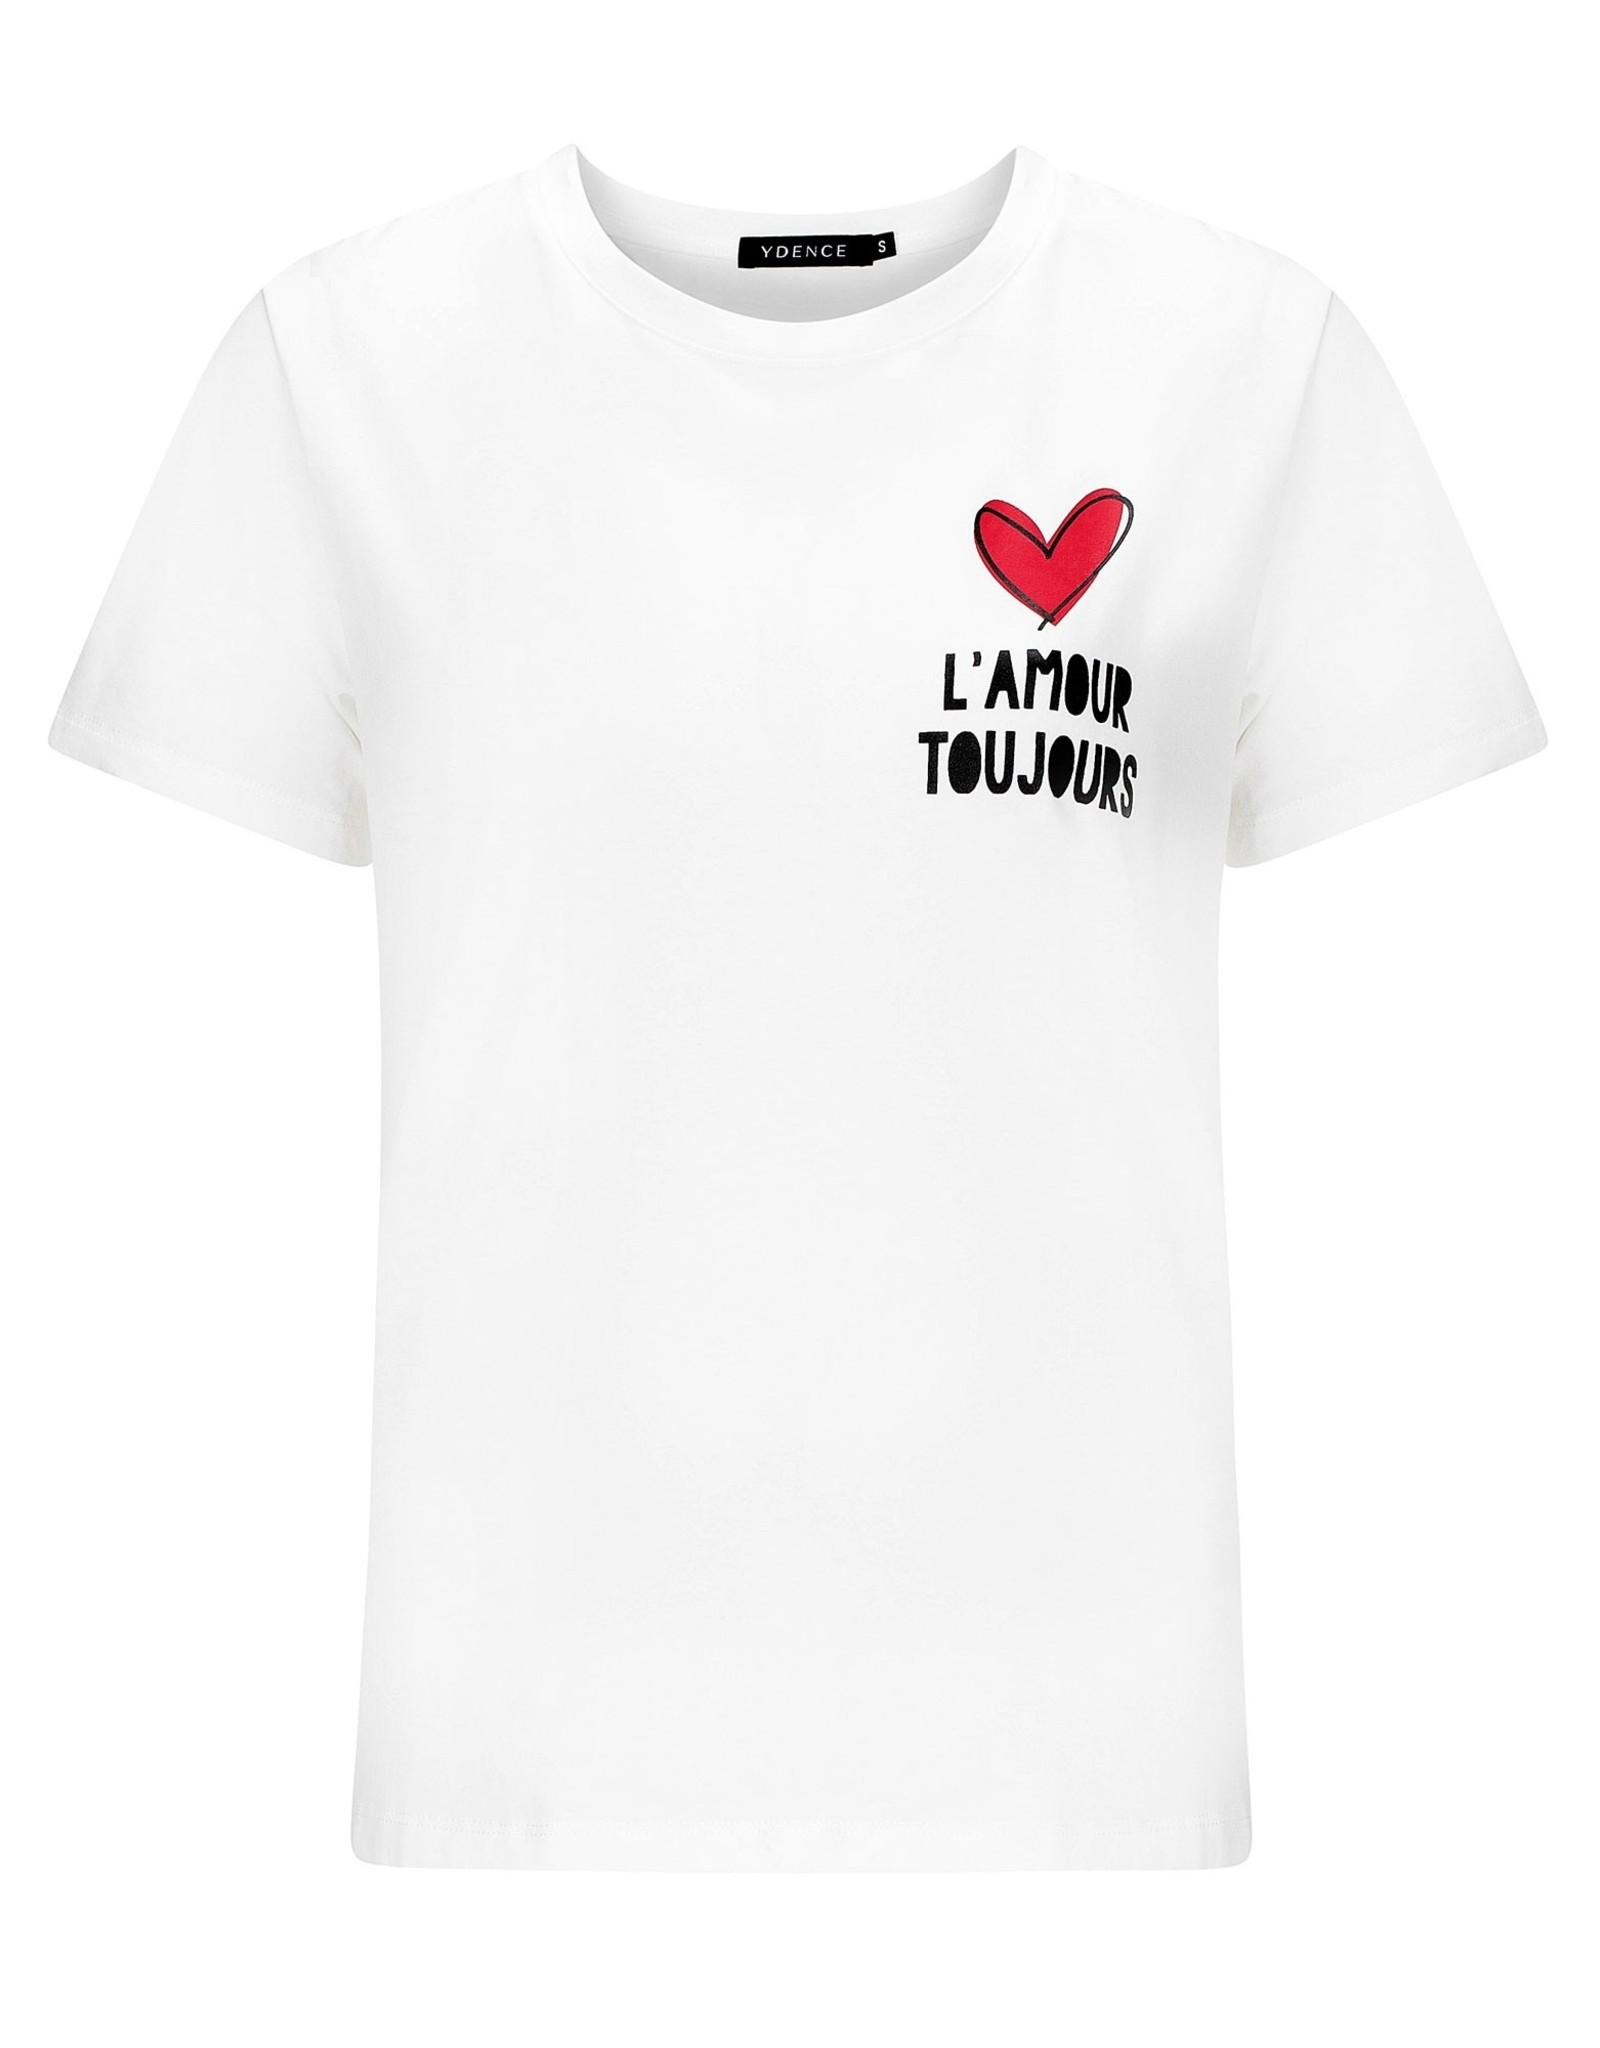 Ydence L'amour Toujours Tee White